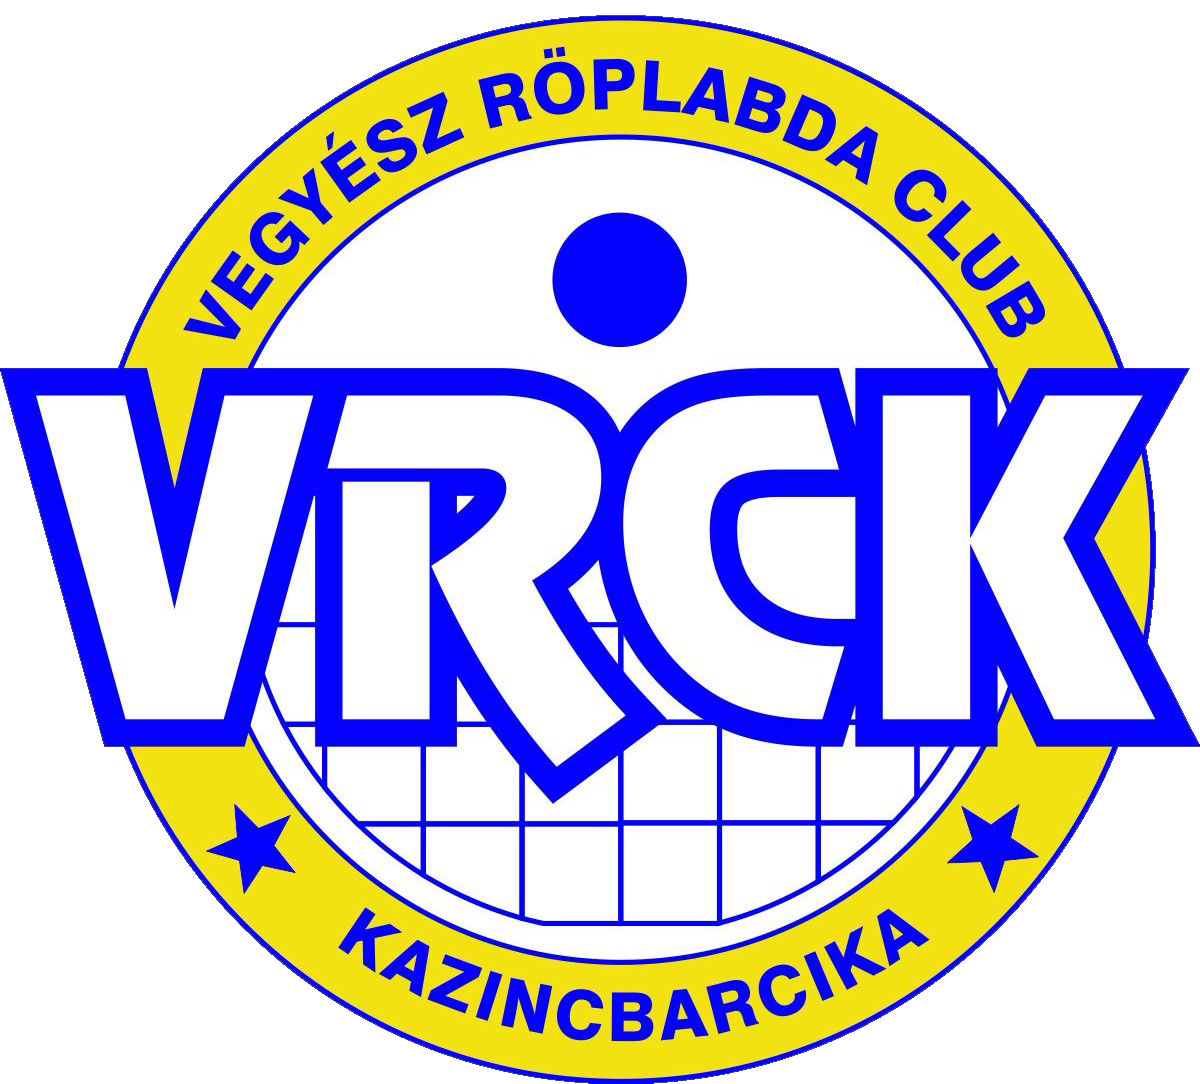 Vegyész RC Kazincbarcika